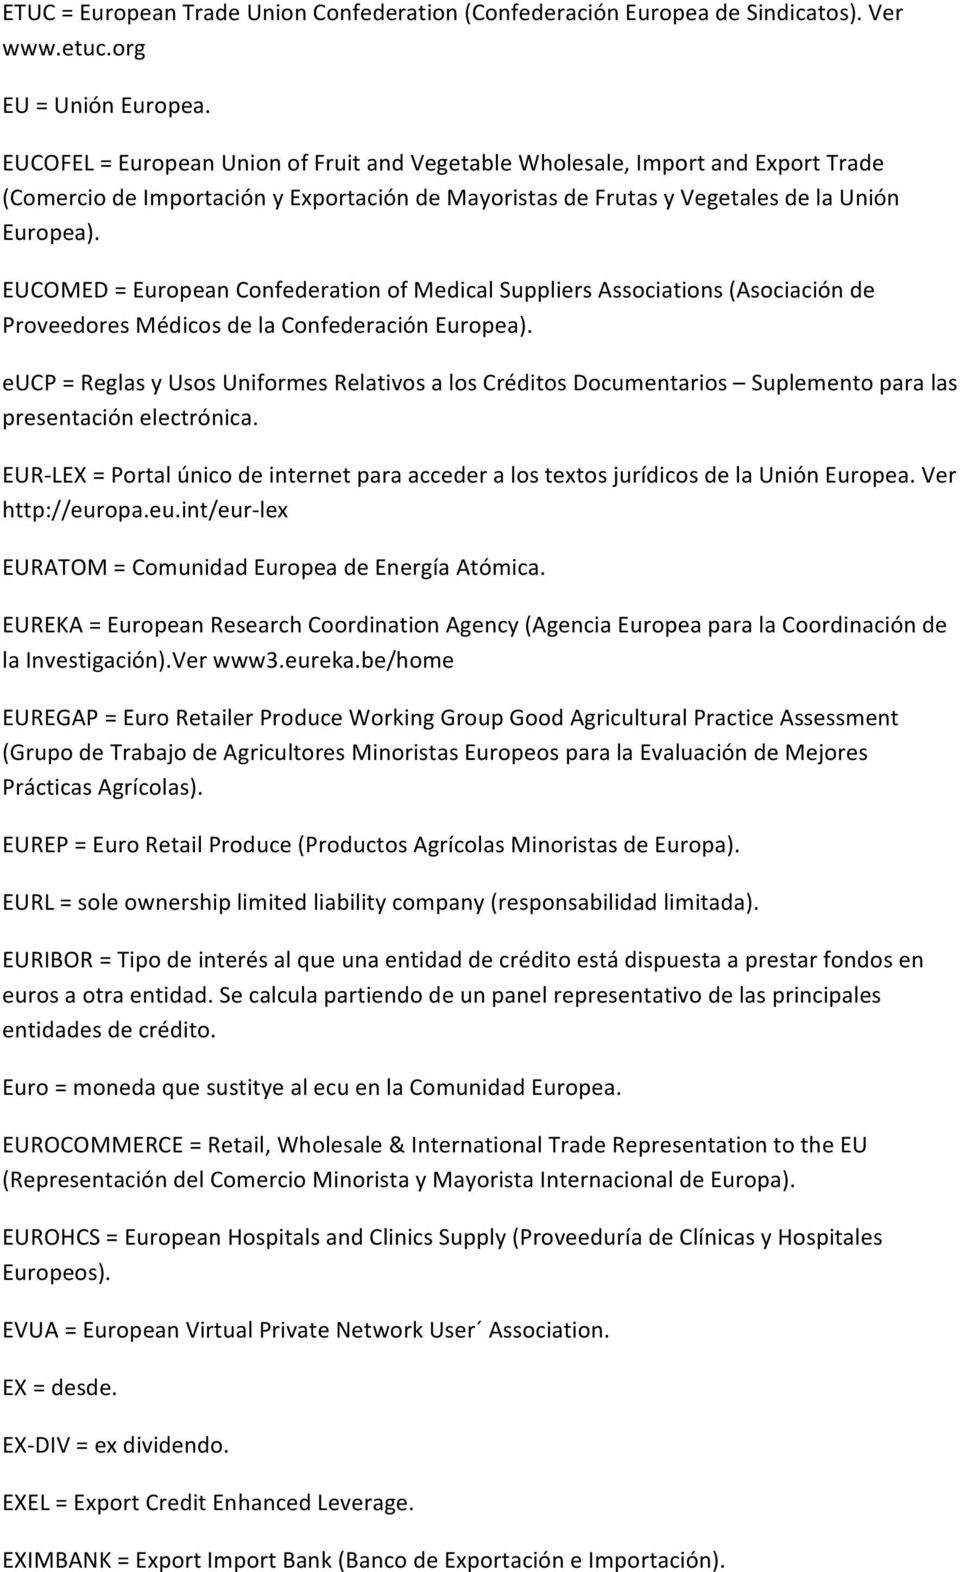 EUCOMED = European Confederation of Medical Suppliers Associations (Asociación de Proveedores Médicos de la Confederación Europea).